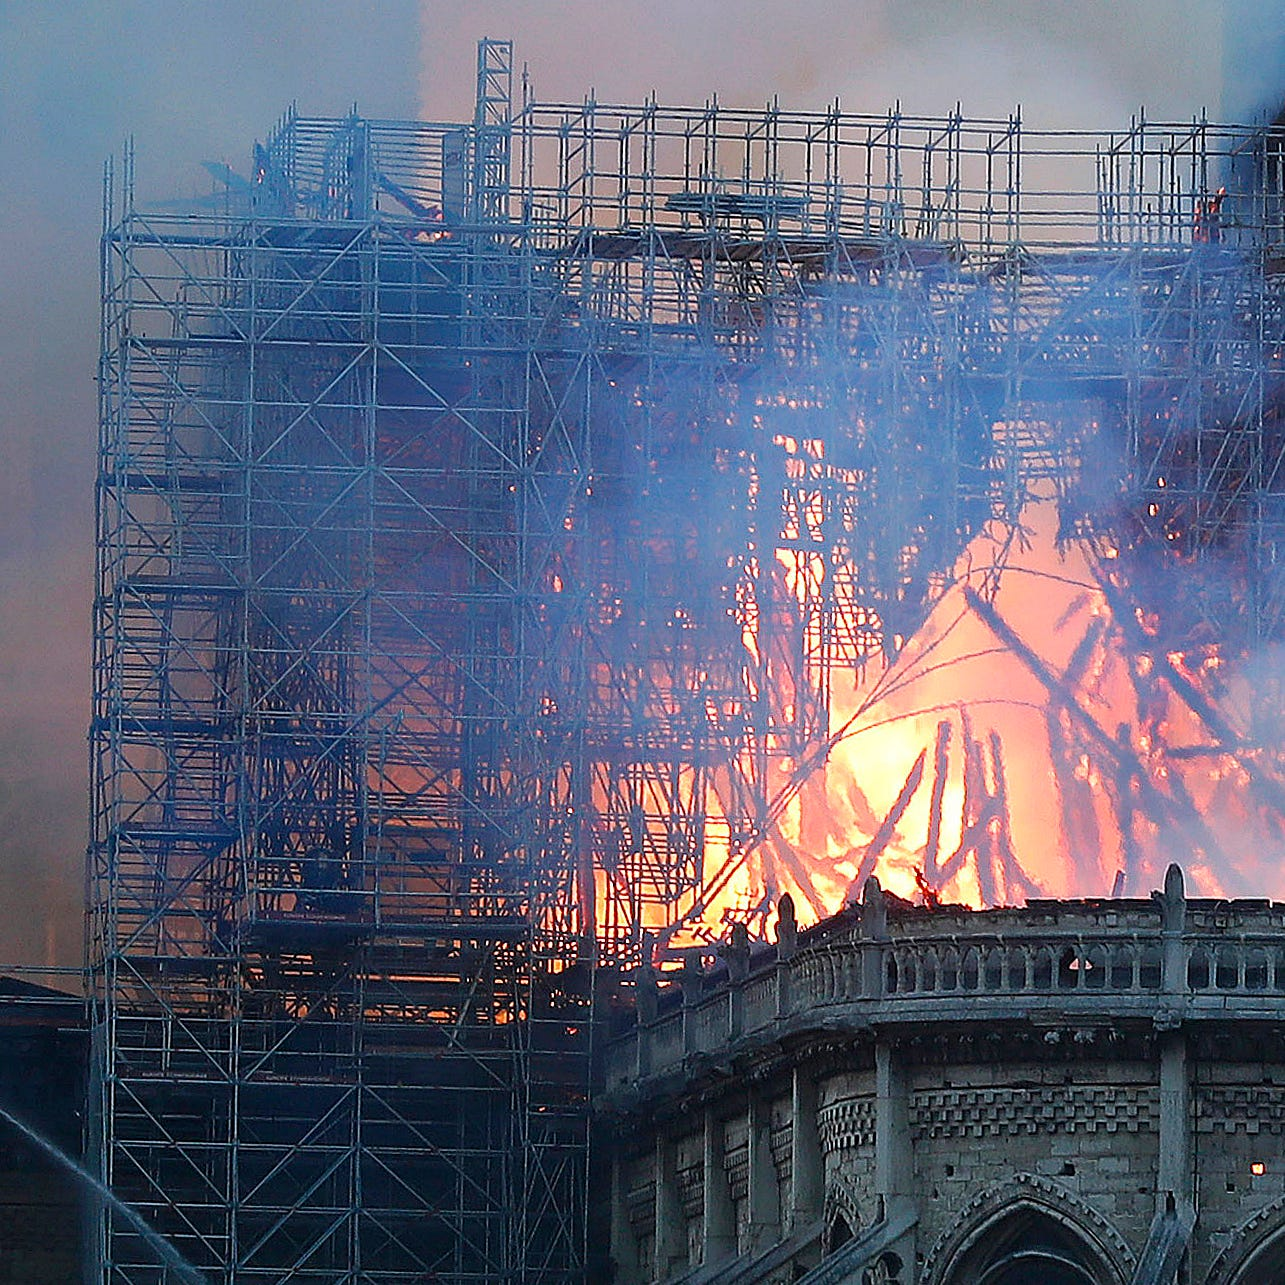 On Paris field trip, Norwich students safe amid Notre Dame cathedral fire